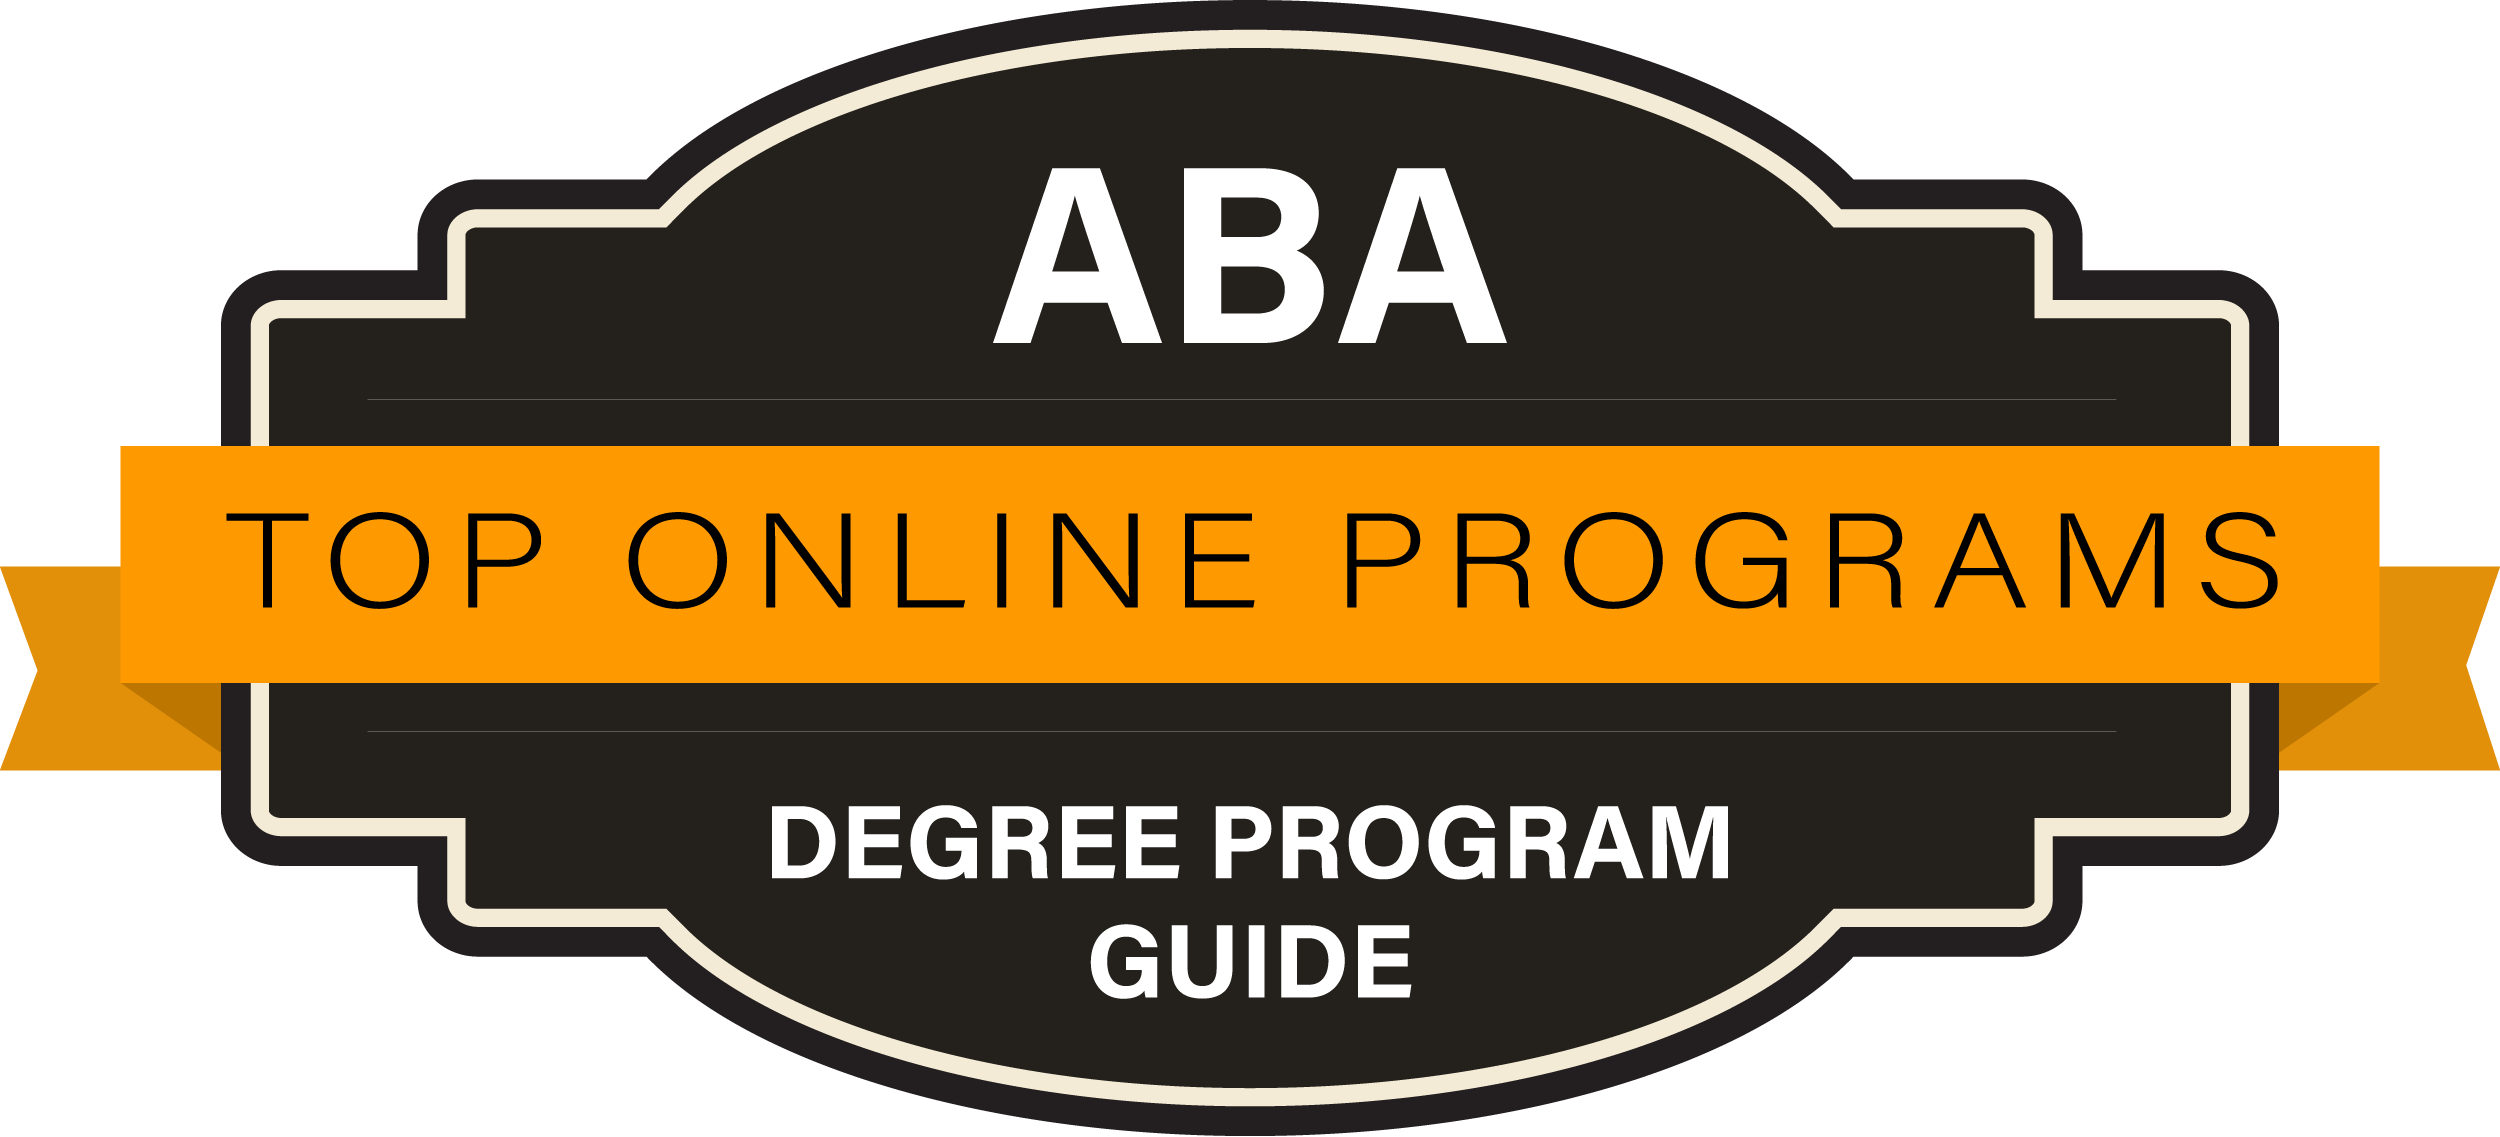 44d65e99978 20 Most Affordable Online ABA Graduate Certificate Programs 2018 ...